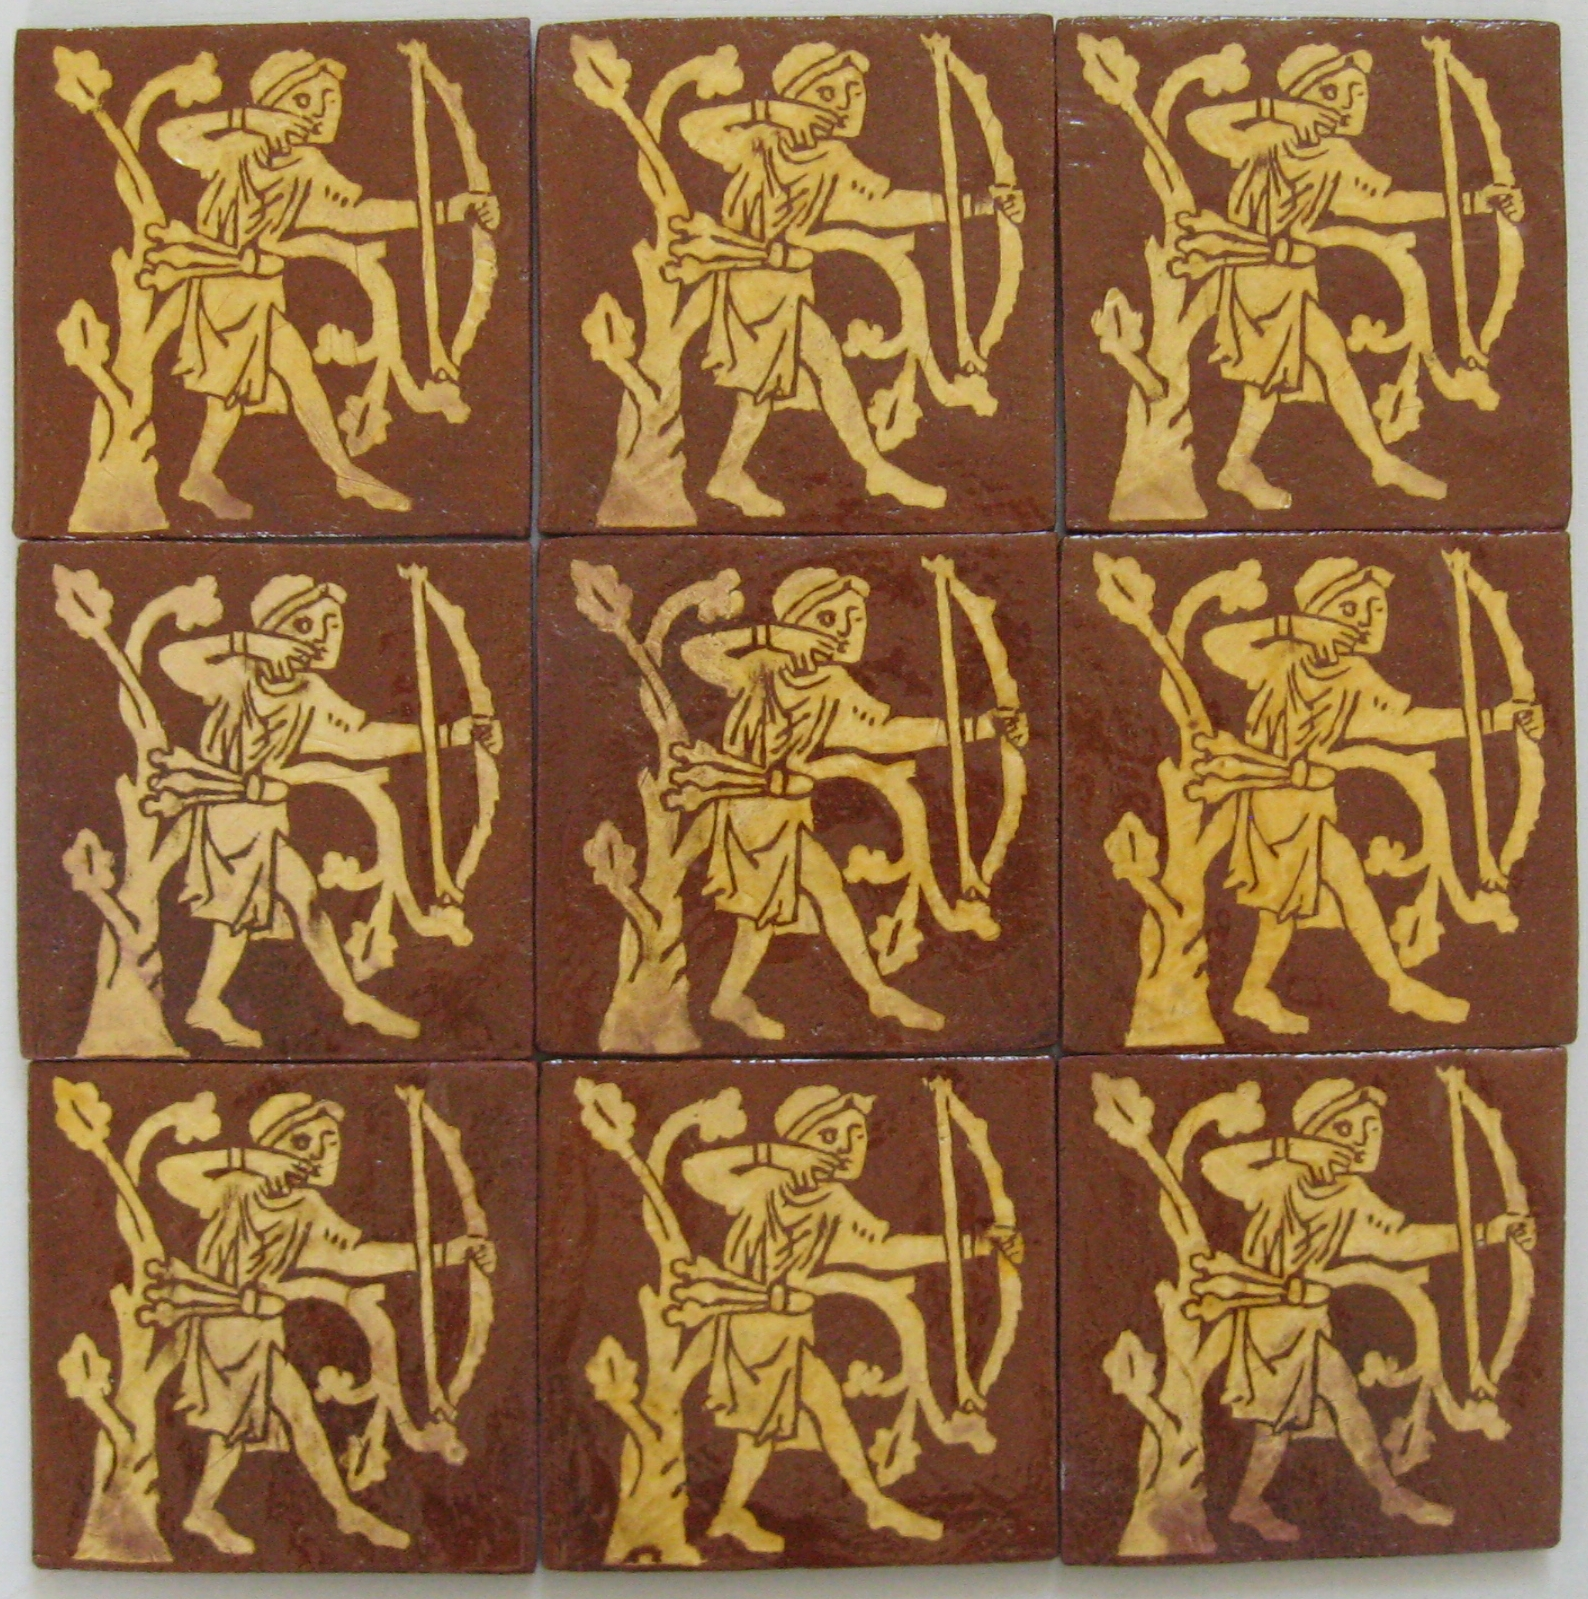 A set of 9 archer tiles.